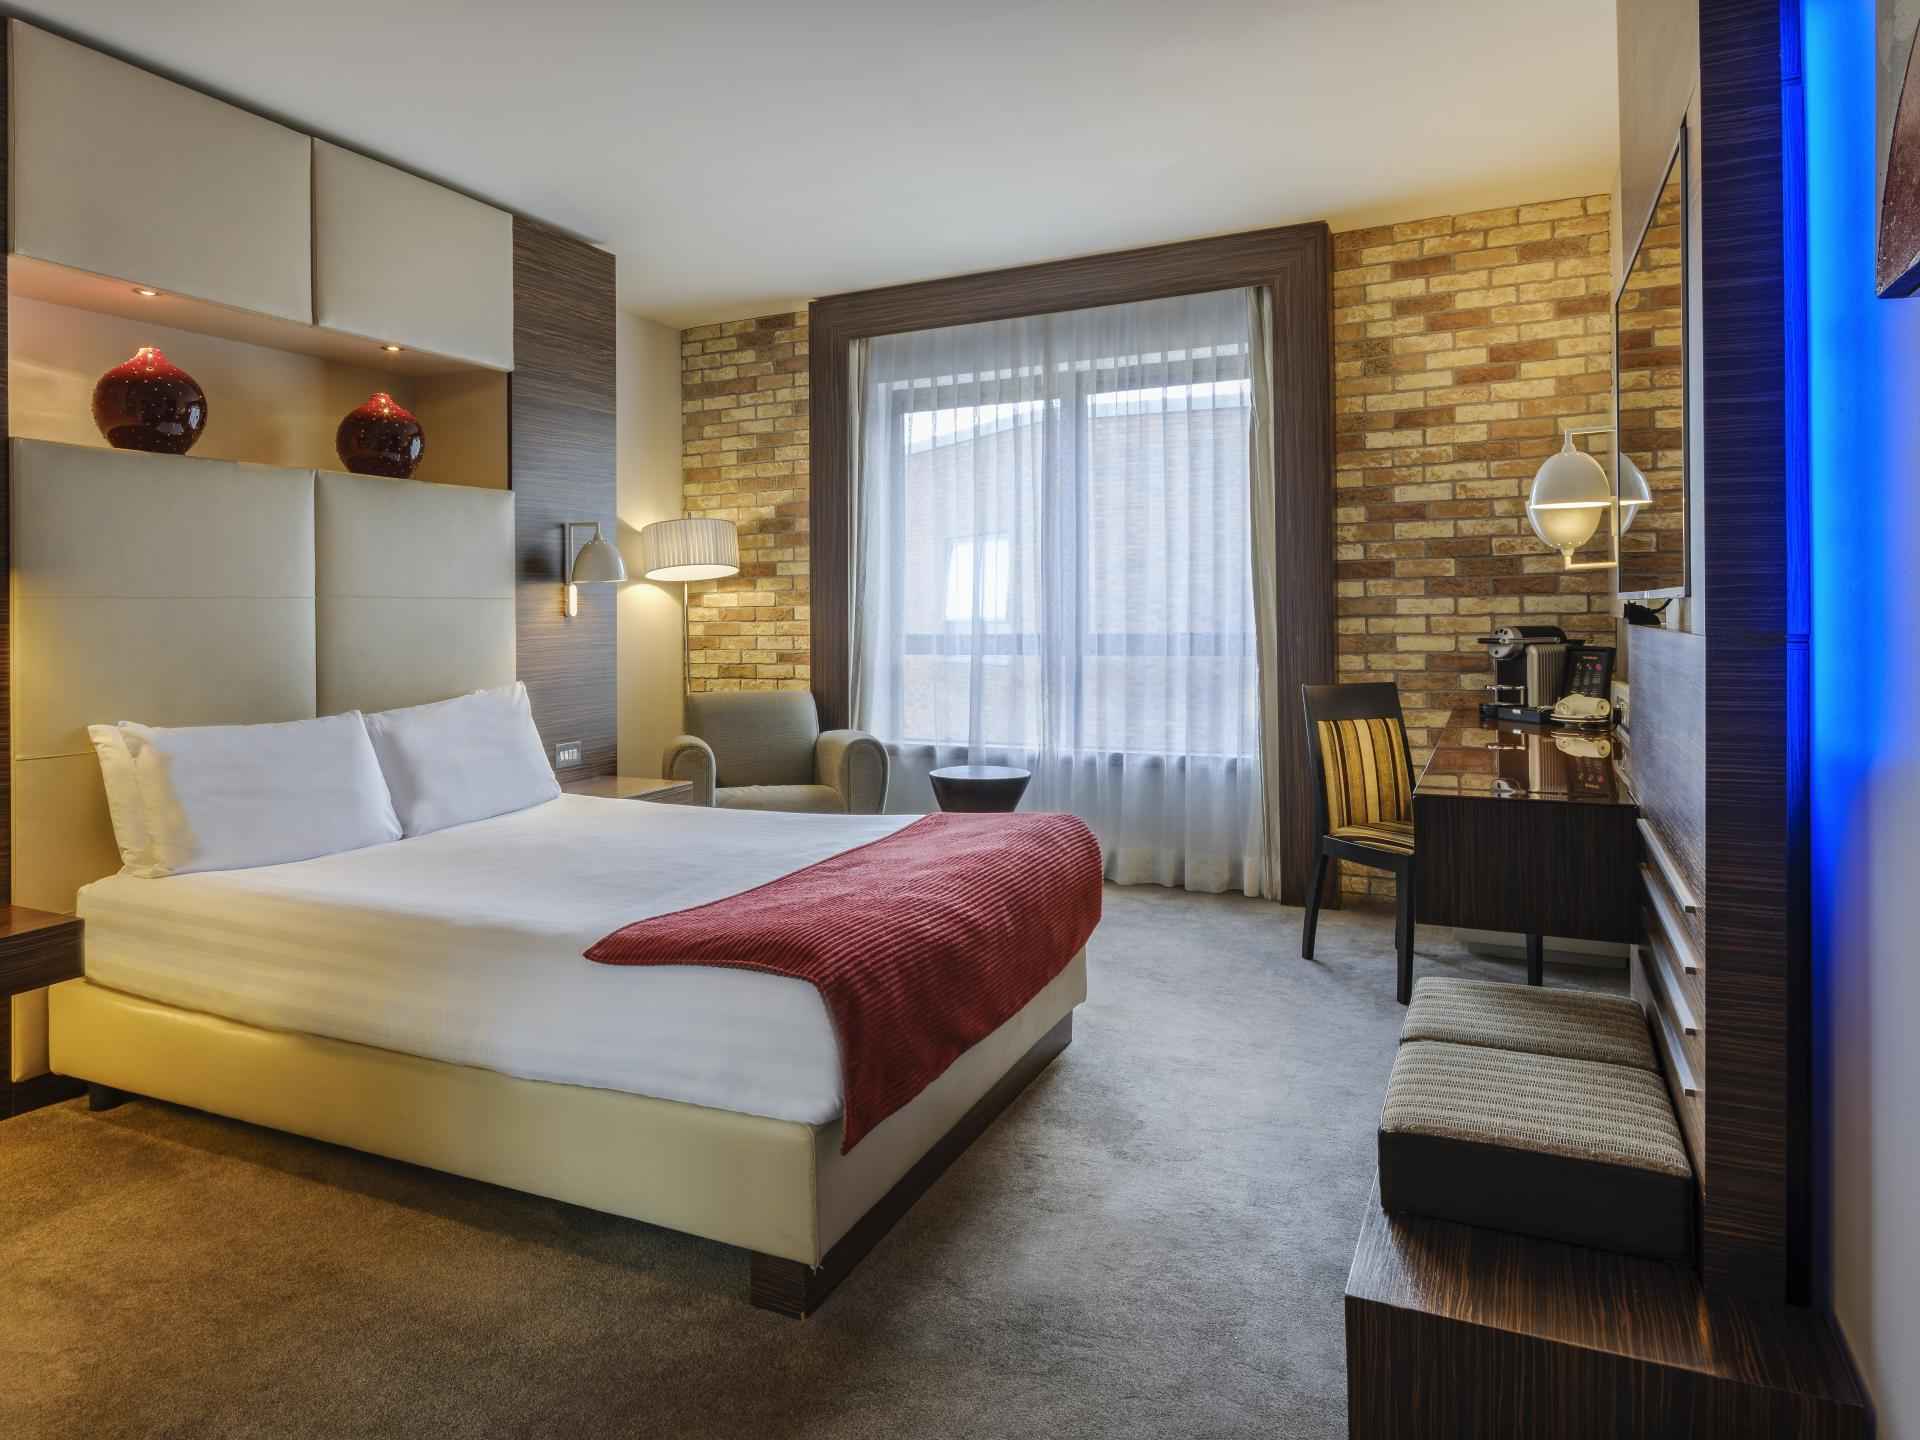 4 Star Hotels Limerick Absolute Hotel